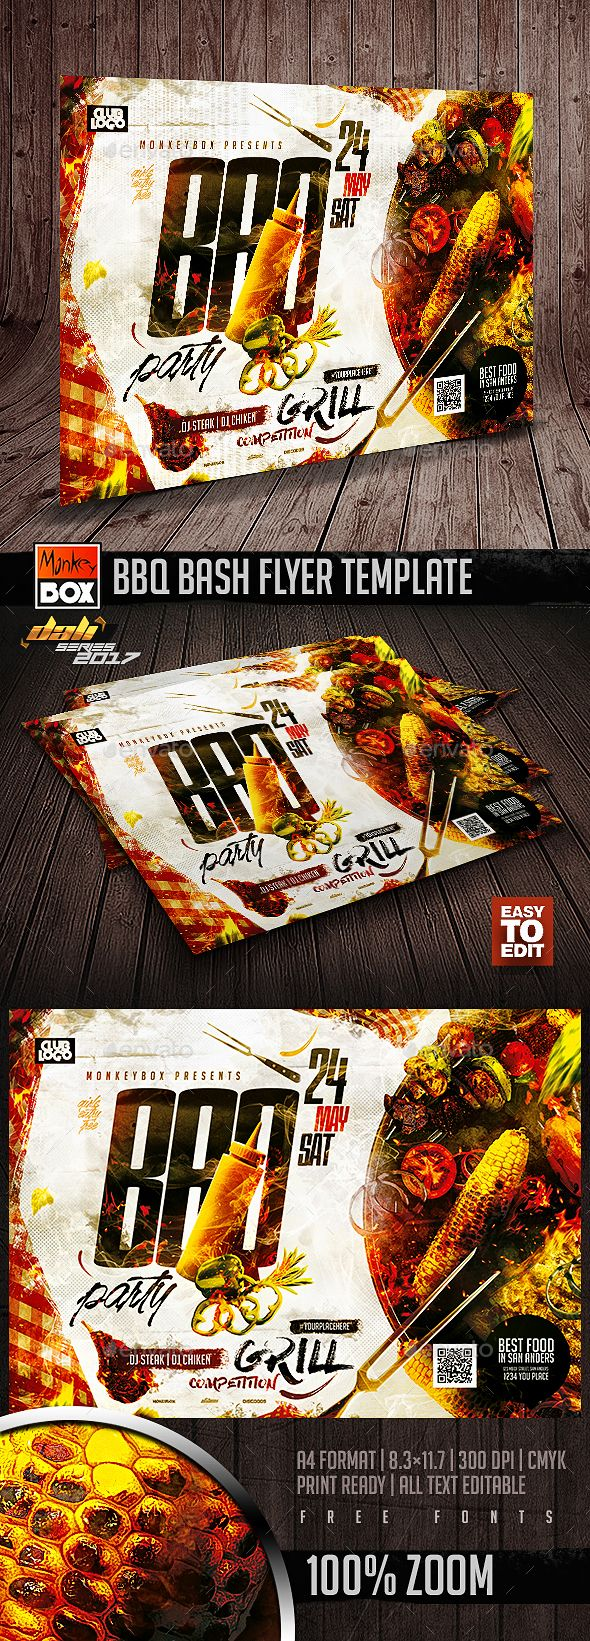 bbq bash flyer template print templates flyers events tags bar barbecue bbq beach party club cookout food foods fourth of july